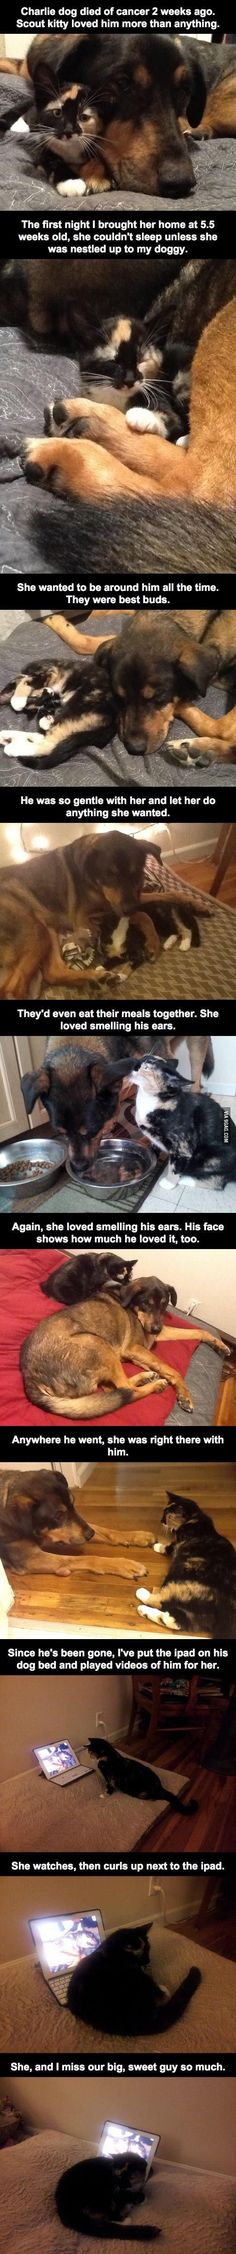 This Dog died of Cancer. The reaction of his loving Kitty friend is Heartbreaking. - 9GAG